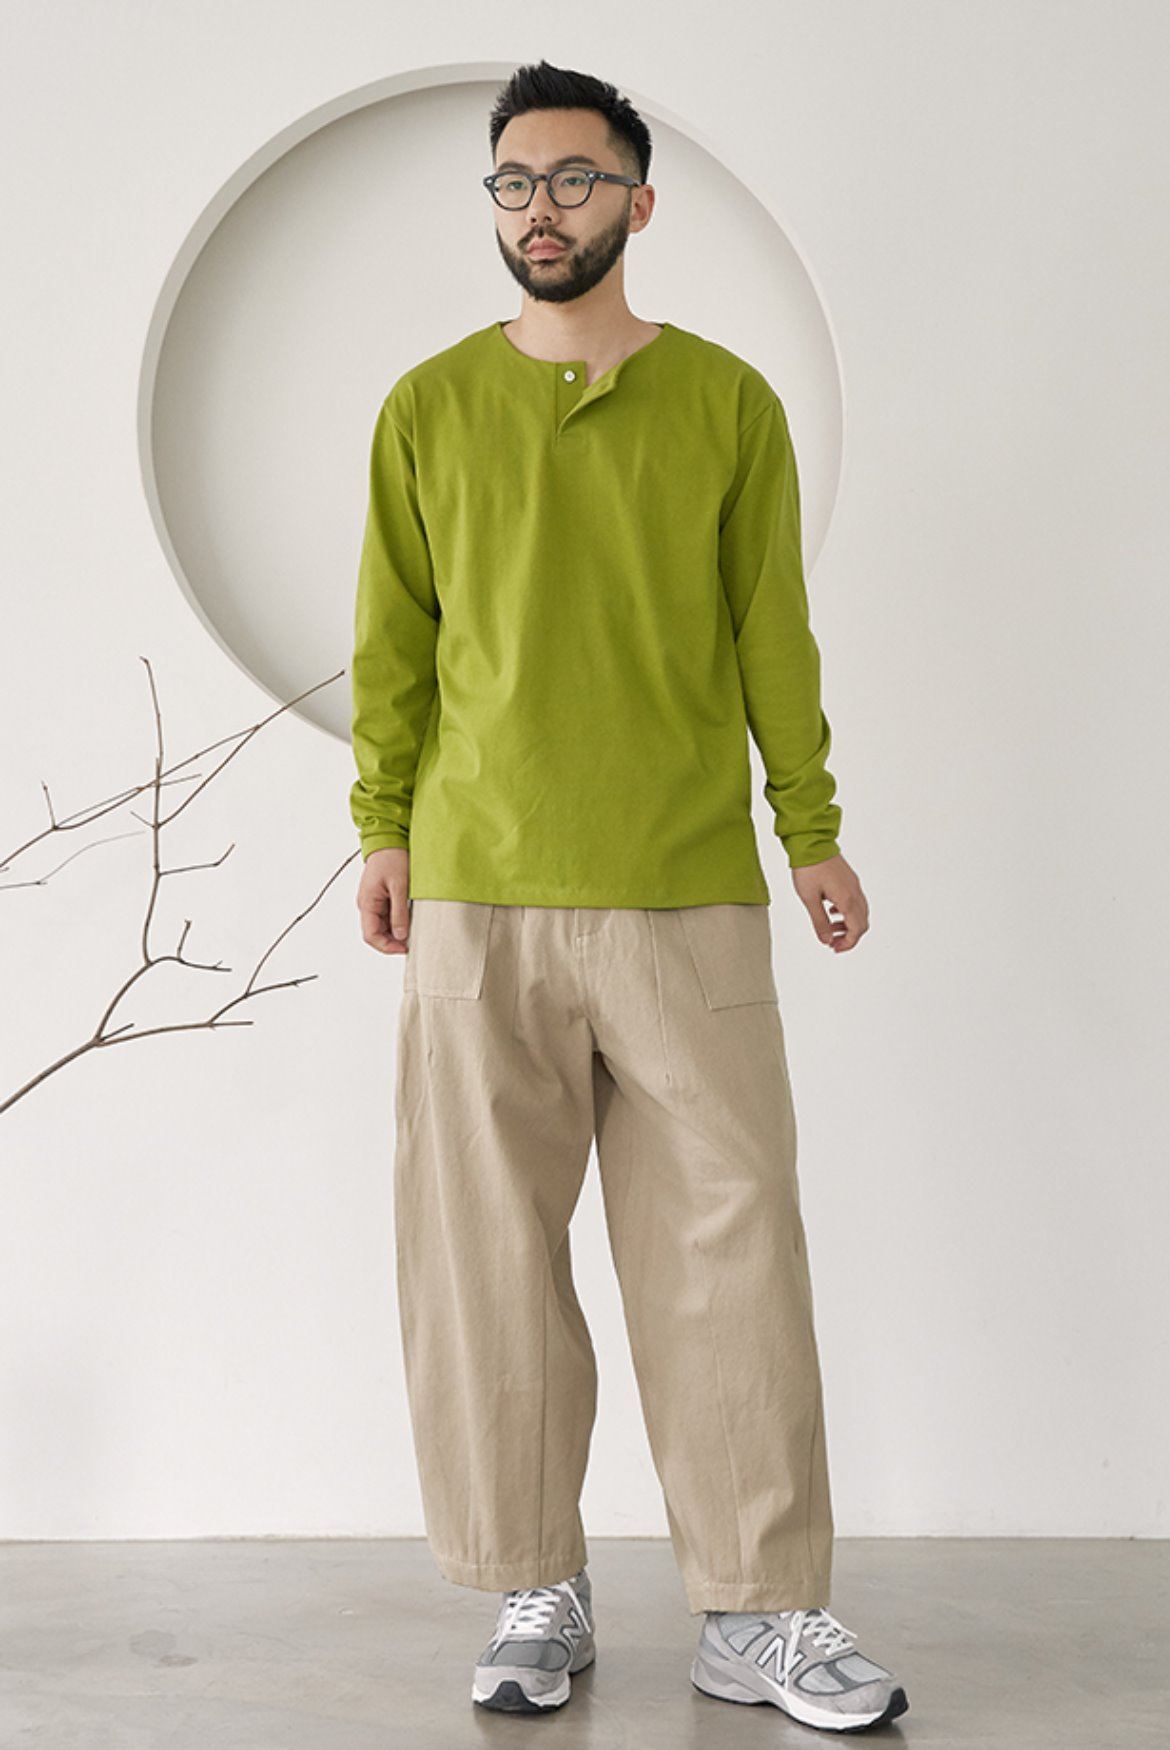 Fatigue Balloon Pants [Beige]